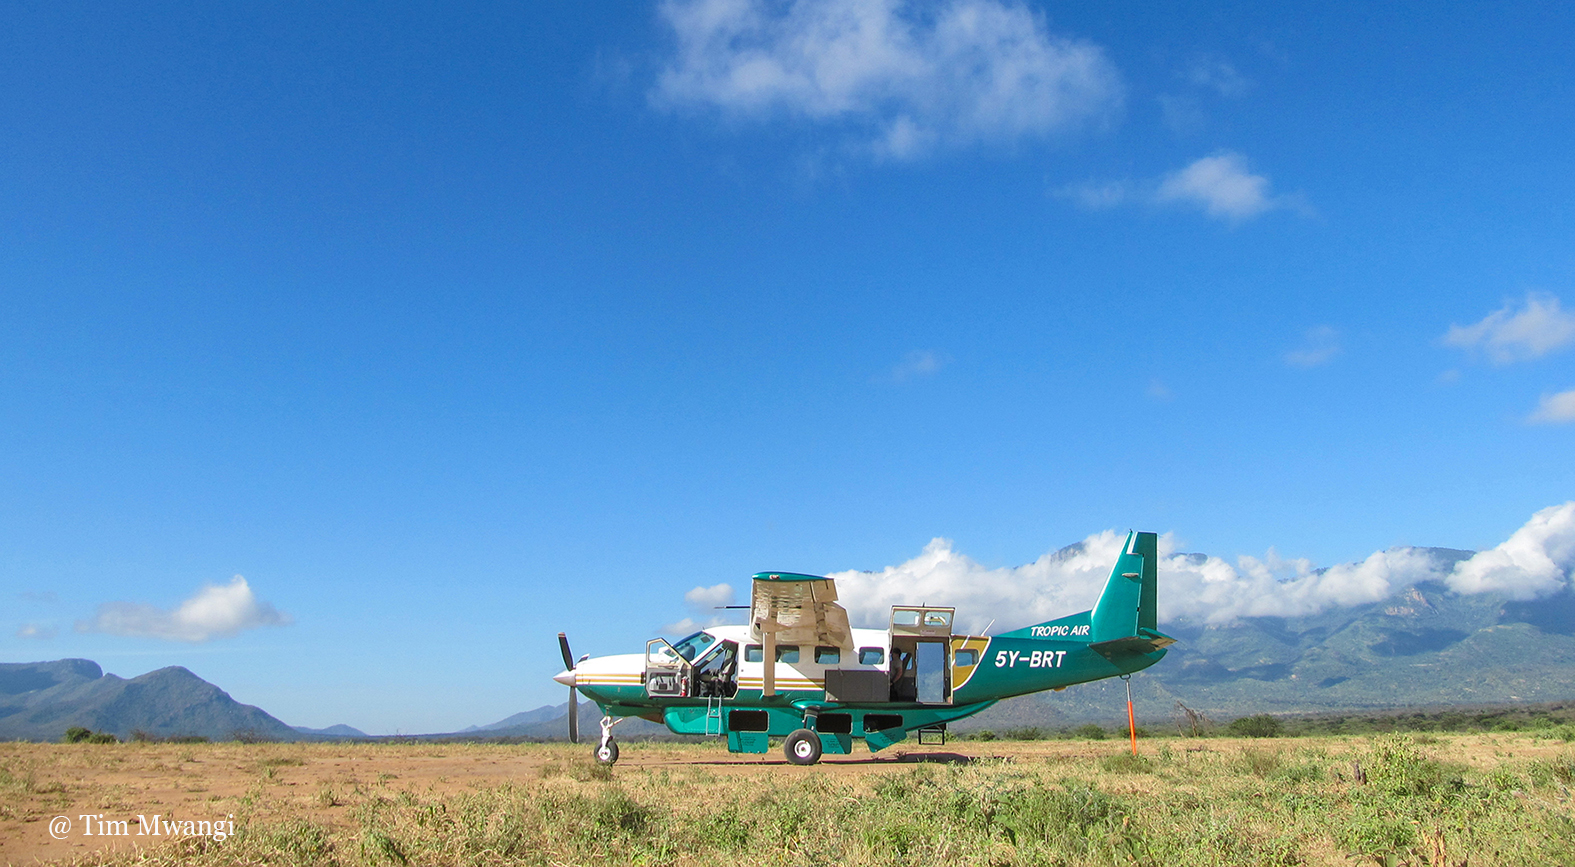 Cessna Caravan in Kenya, ready for private charter flight